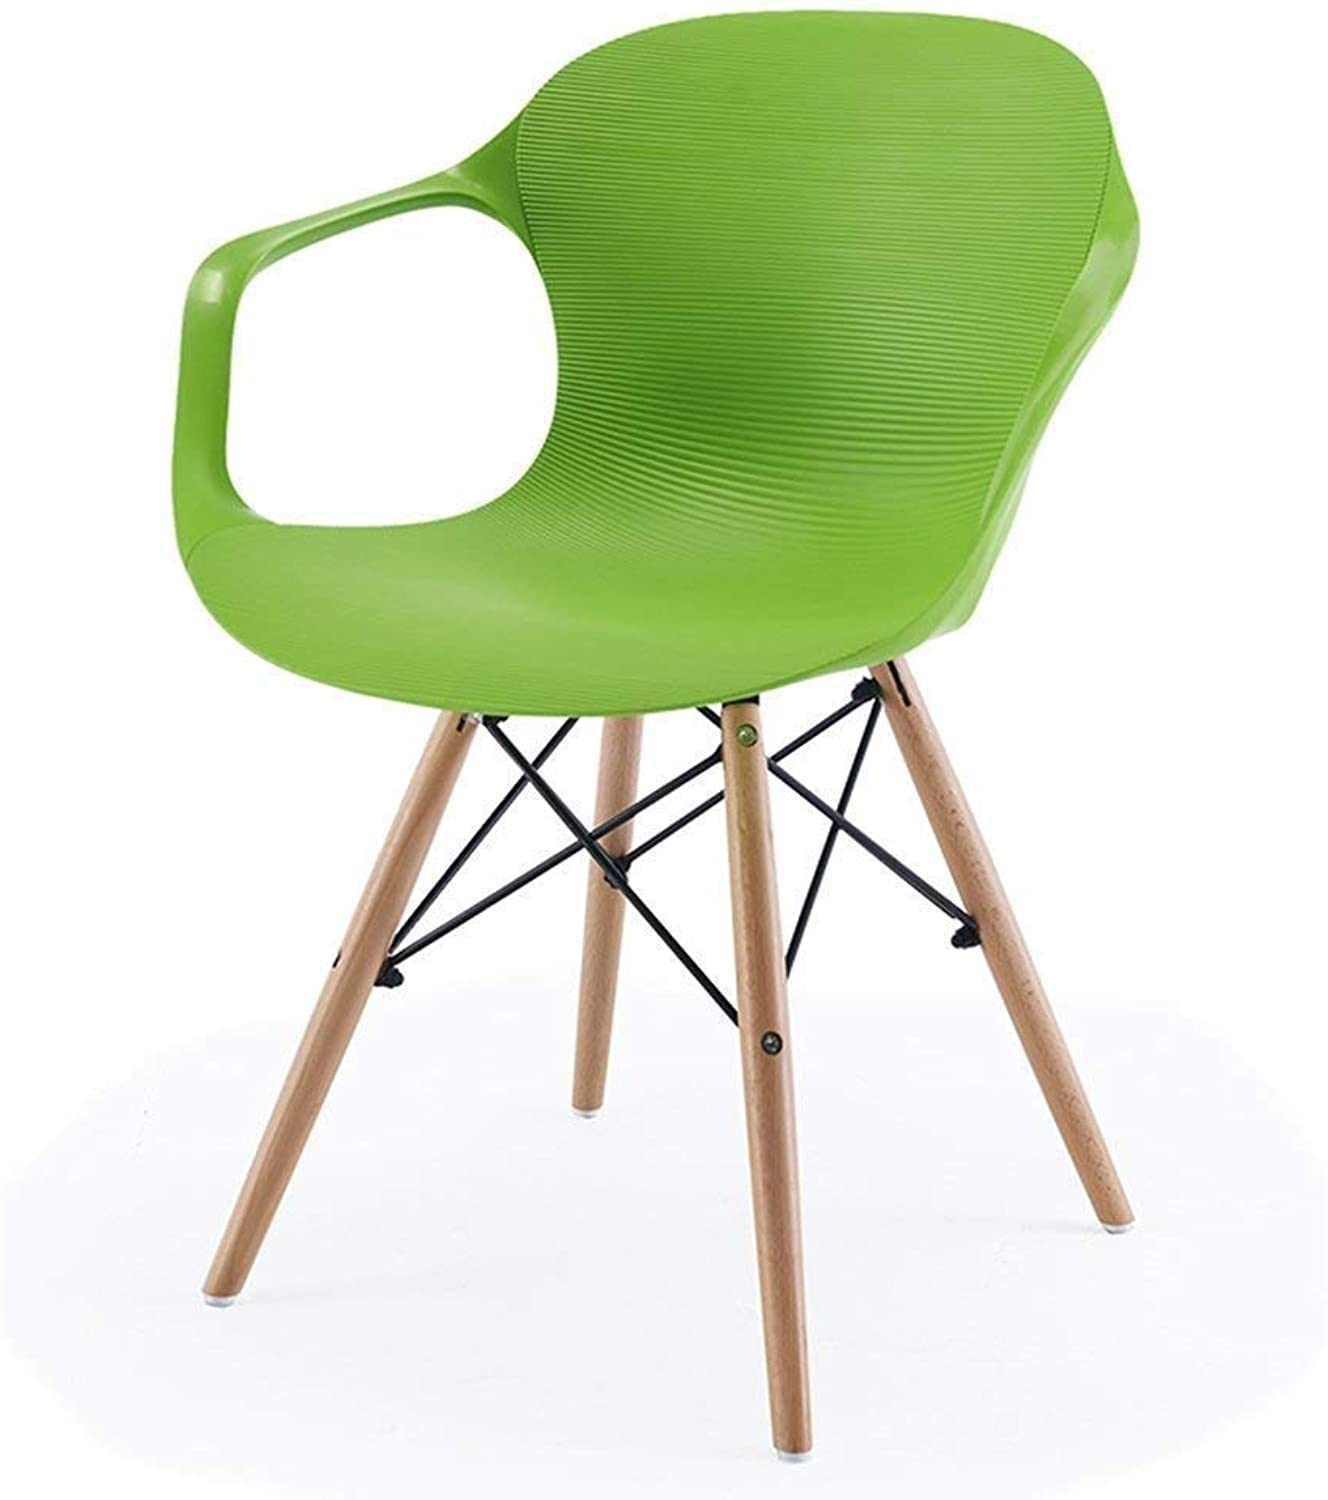 BRNEBN Chair-Dining Chair Modern Lounge Chair Backrest Plastic Armchair Simple American Stool Home Convenient (color   Green)